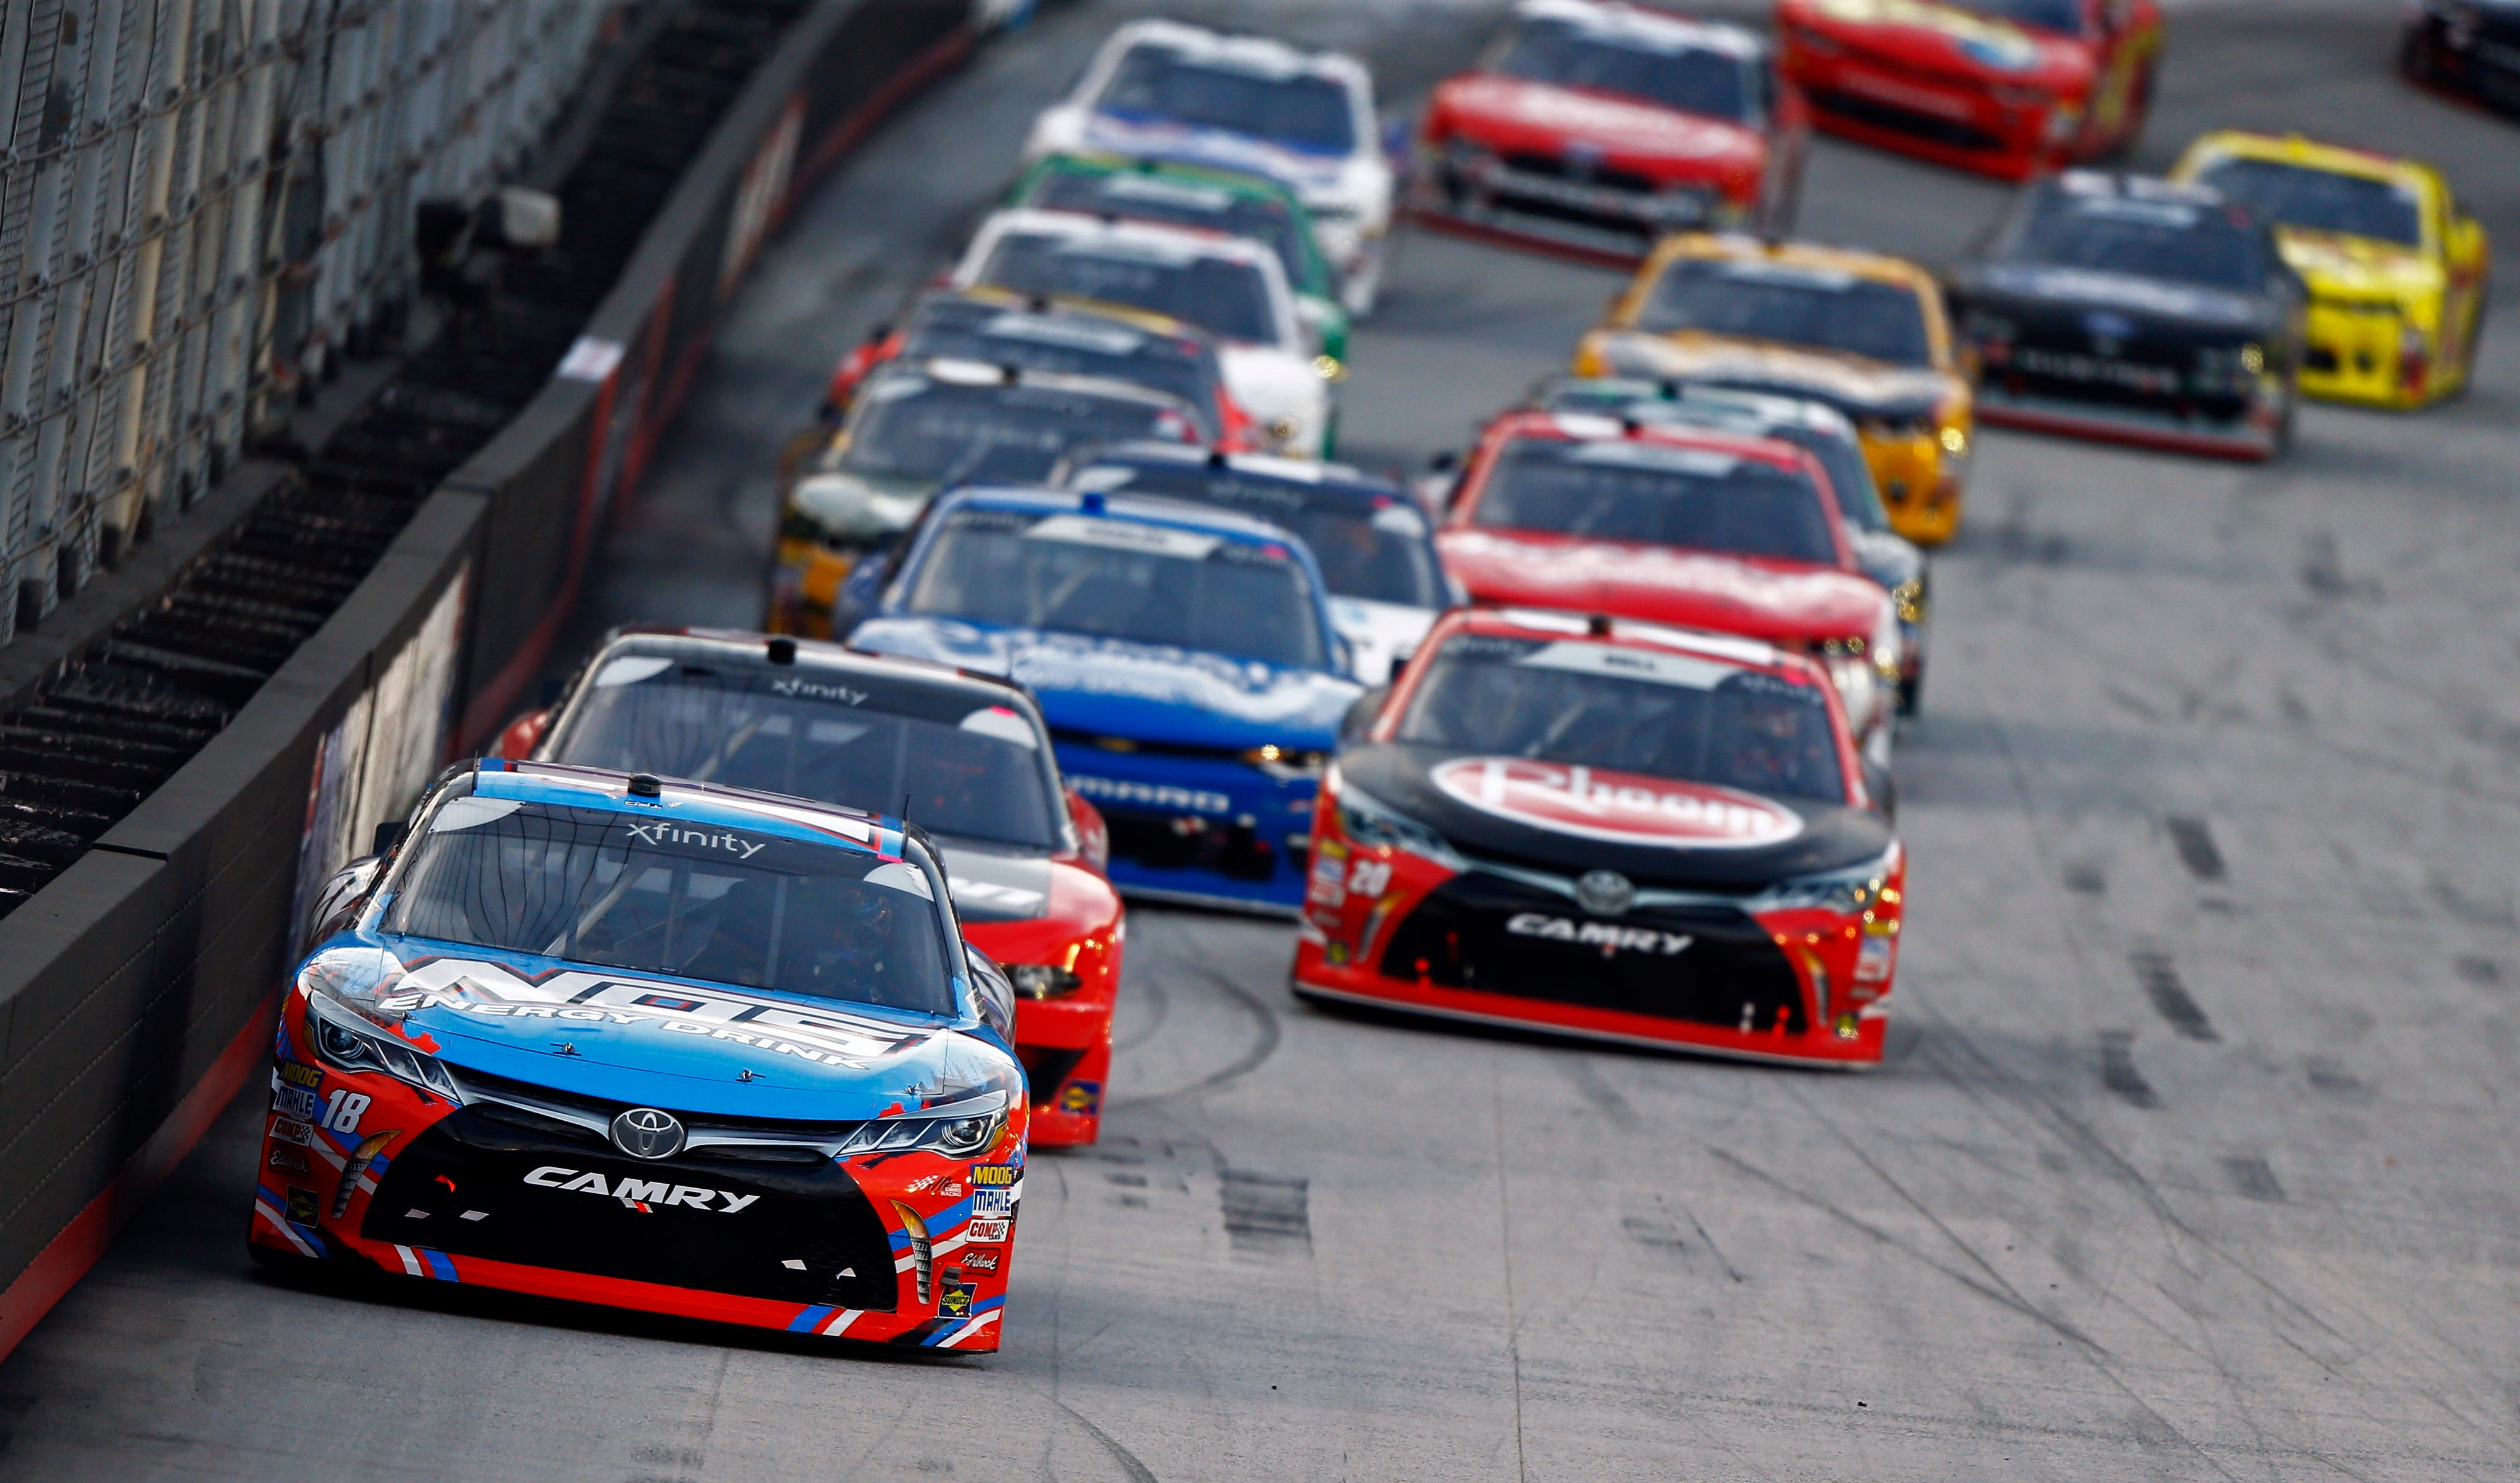 a990b21a1c2ad BRISTOL, Tenn. (AP) — Kyle Larson capitalized on Kyle Busch's early exit to  win the Xfinity Series race Friday night at Bristol Motor Speedway, ...